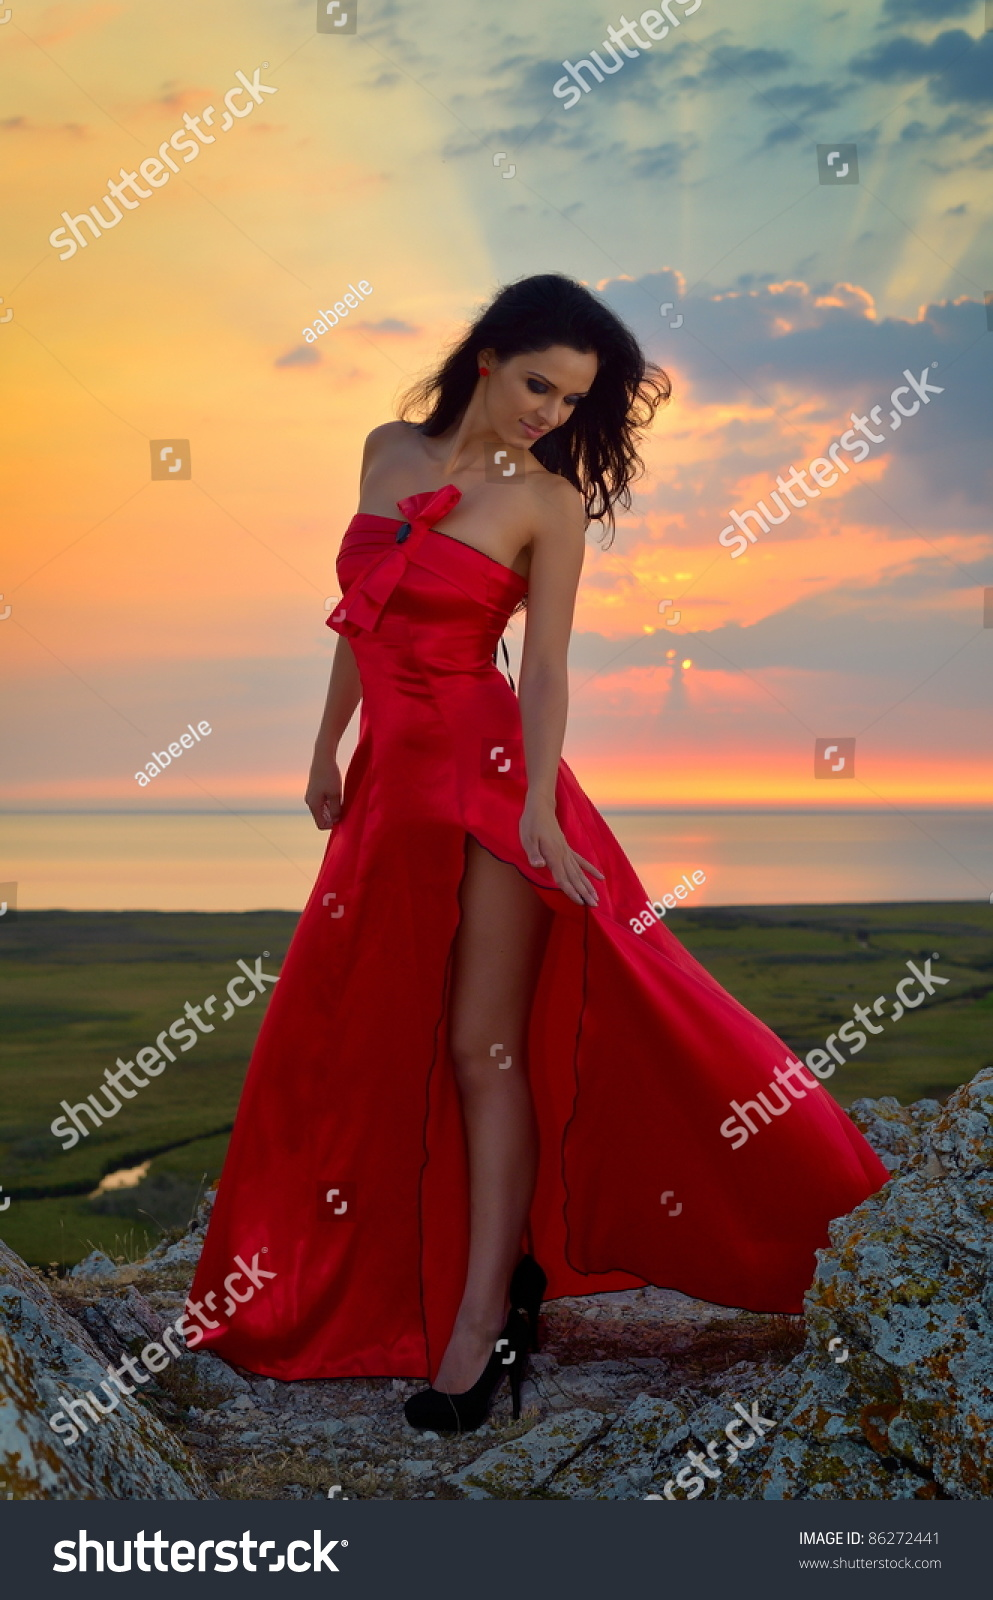 Beautiful Woman At Sunset/Sunrise Stock Photo 86272441 ...